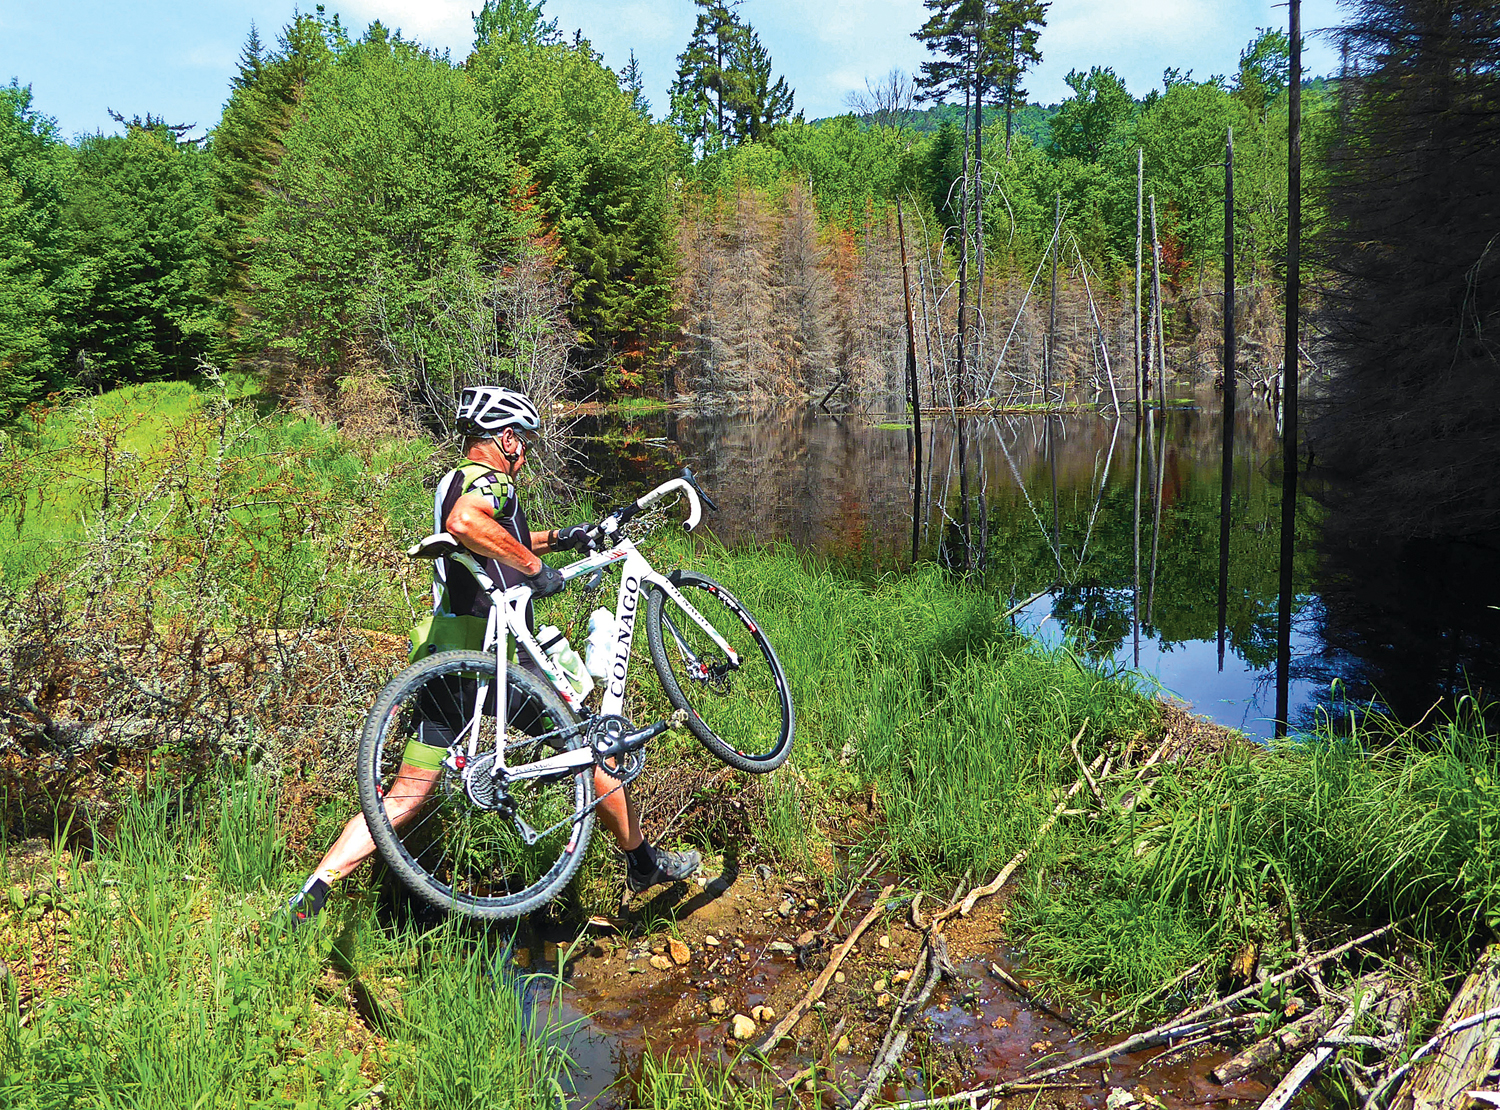 Some of the roads are now blocked by beaver dams and ponds, and some fancy footwork is necessary to continue the ride. © Dave Kraus/ Krausgrafik.com